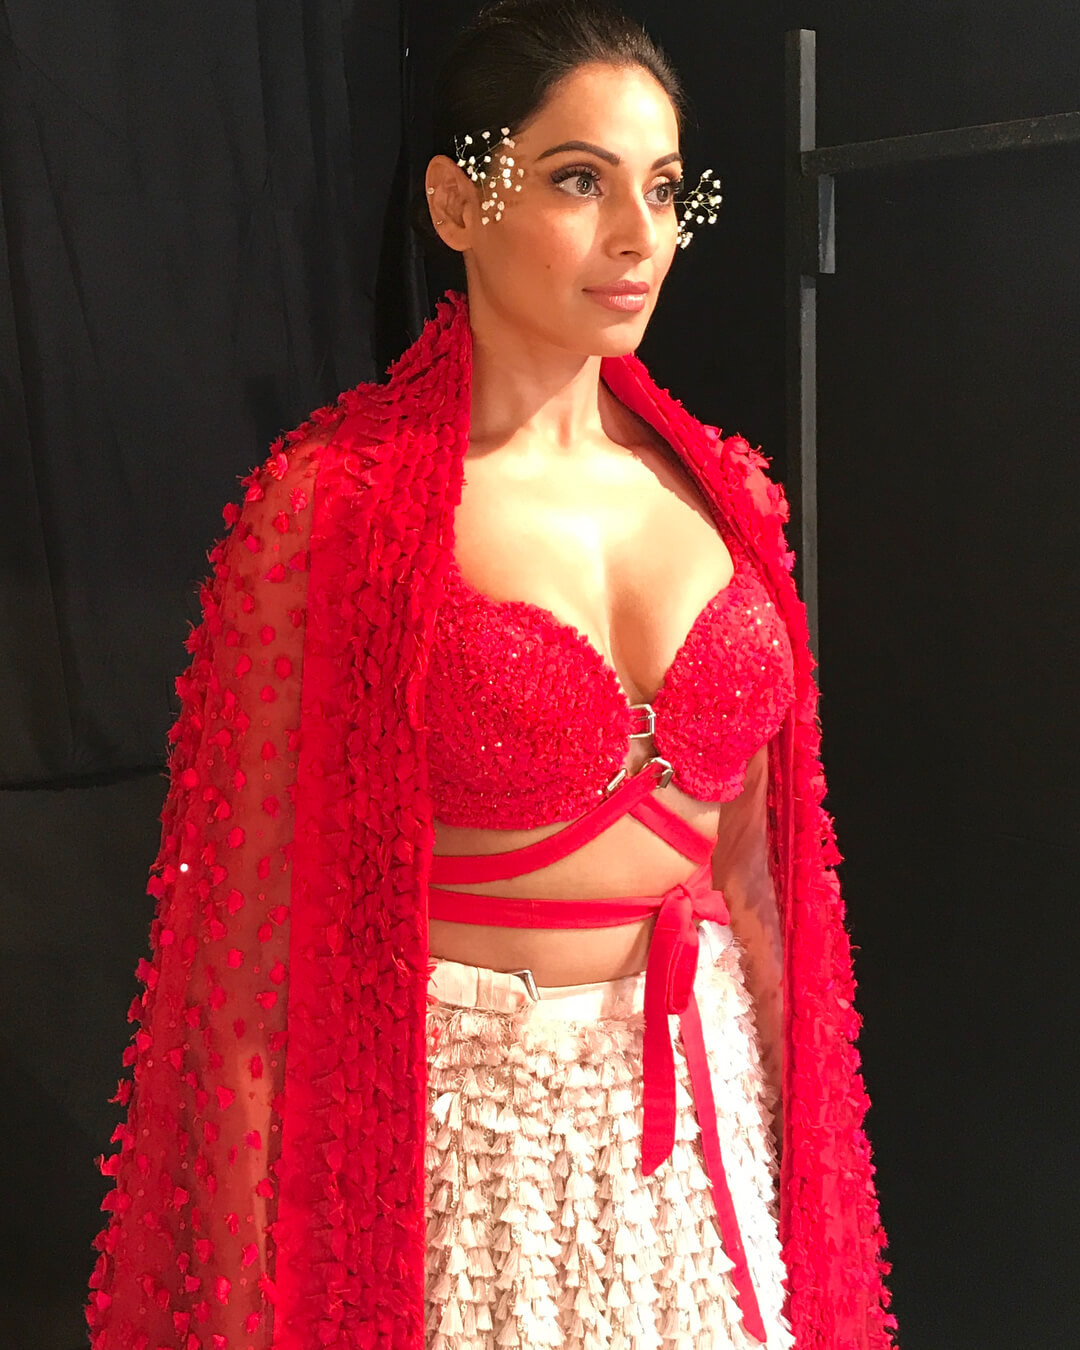 Red and white Bold outfit